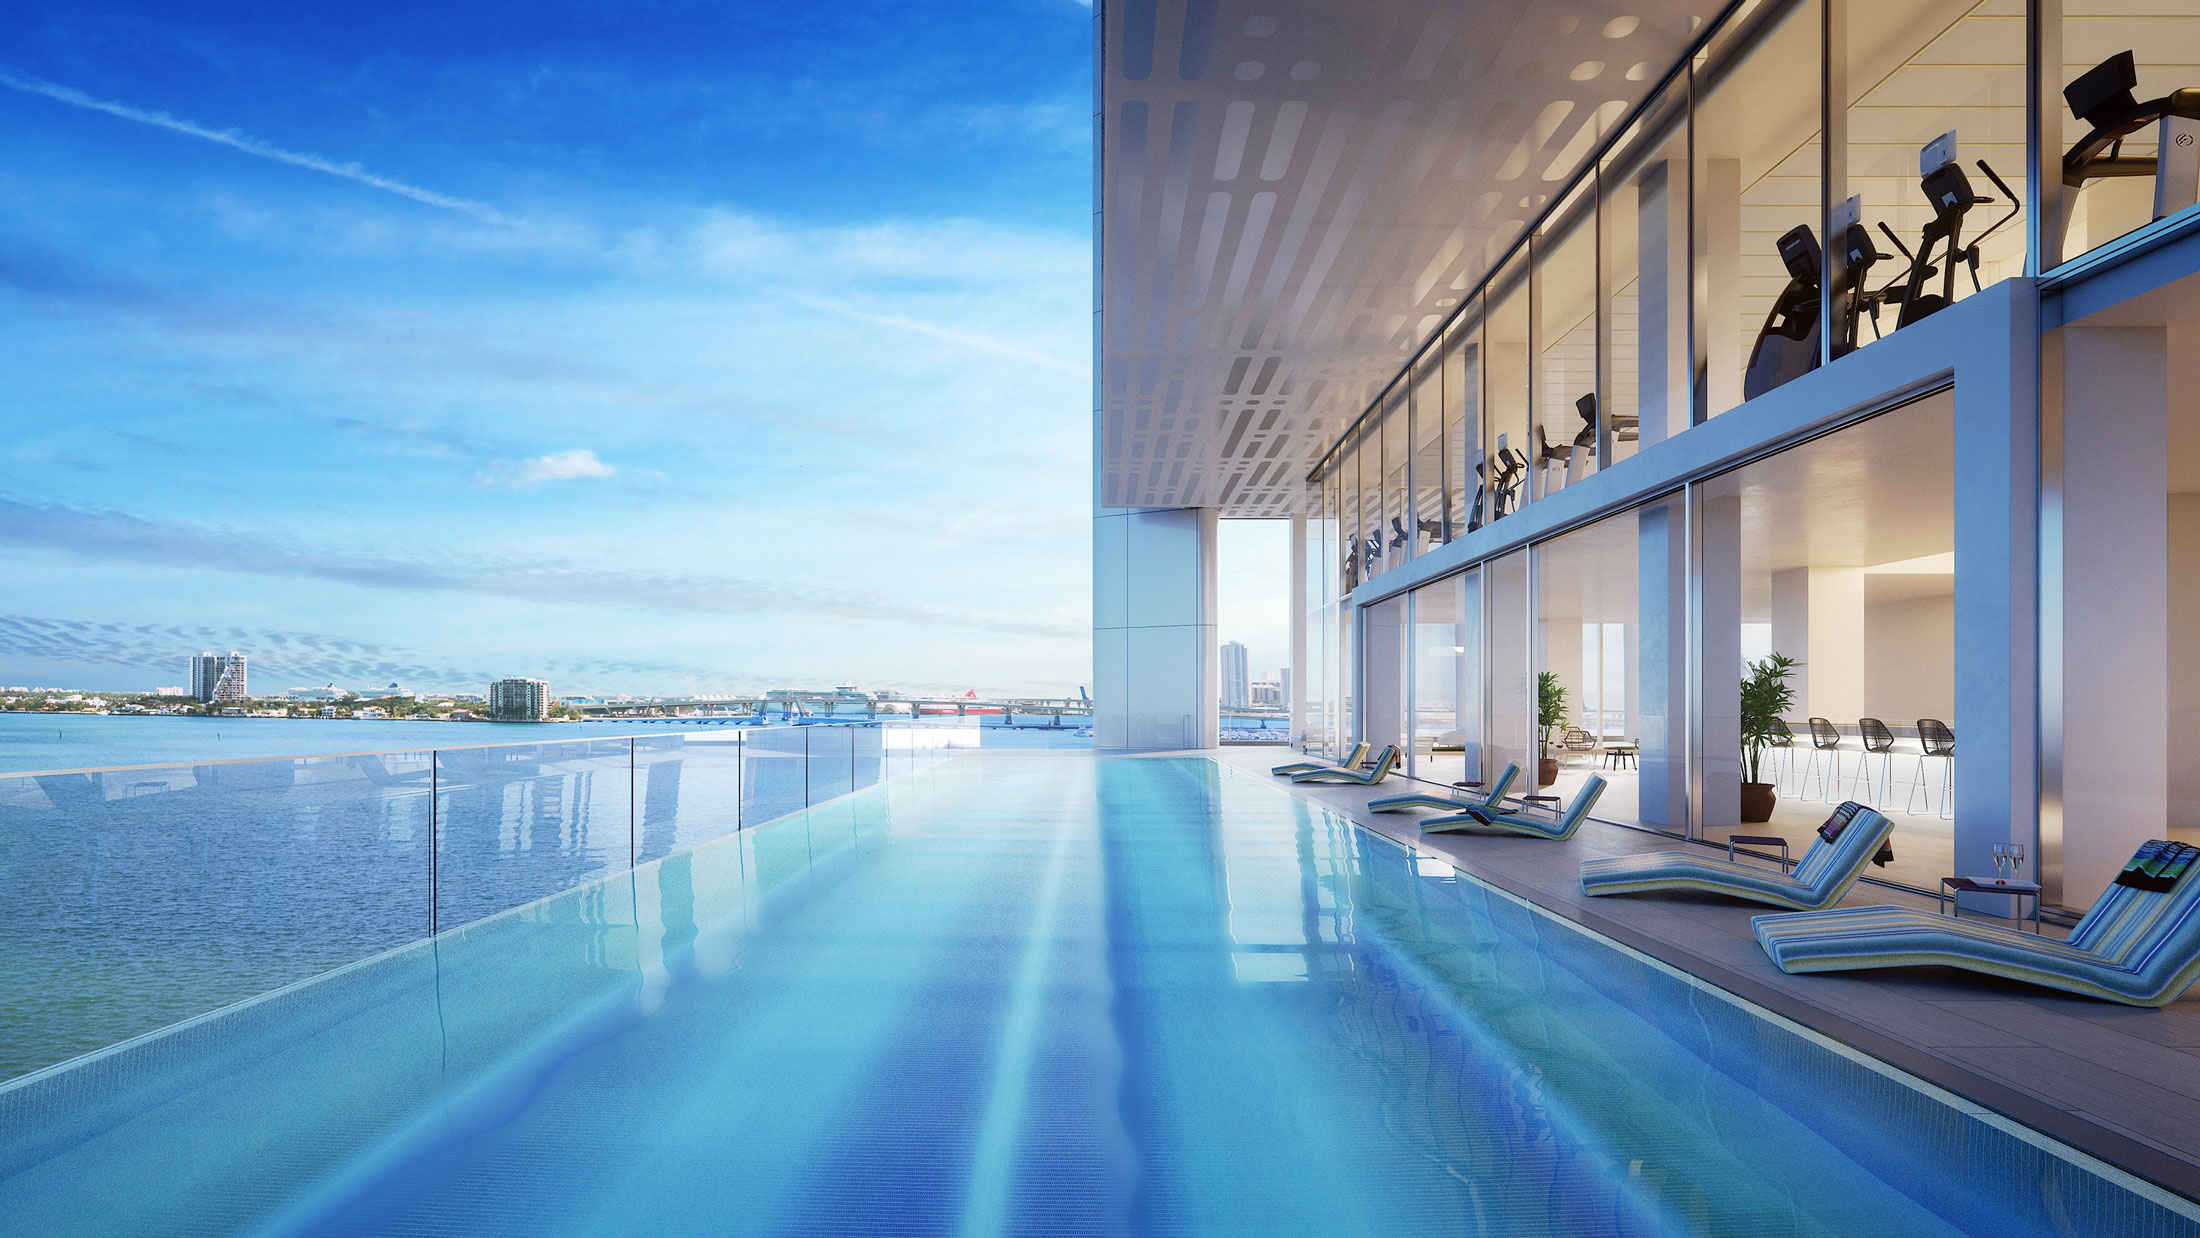 Architectural Rendering of the infinty pool of the Missoni Baia project located in Miami, Florida